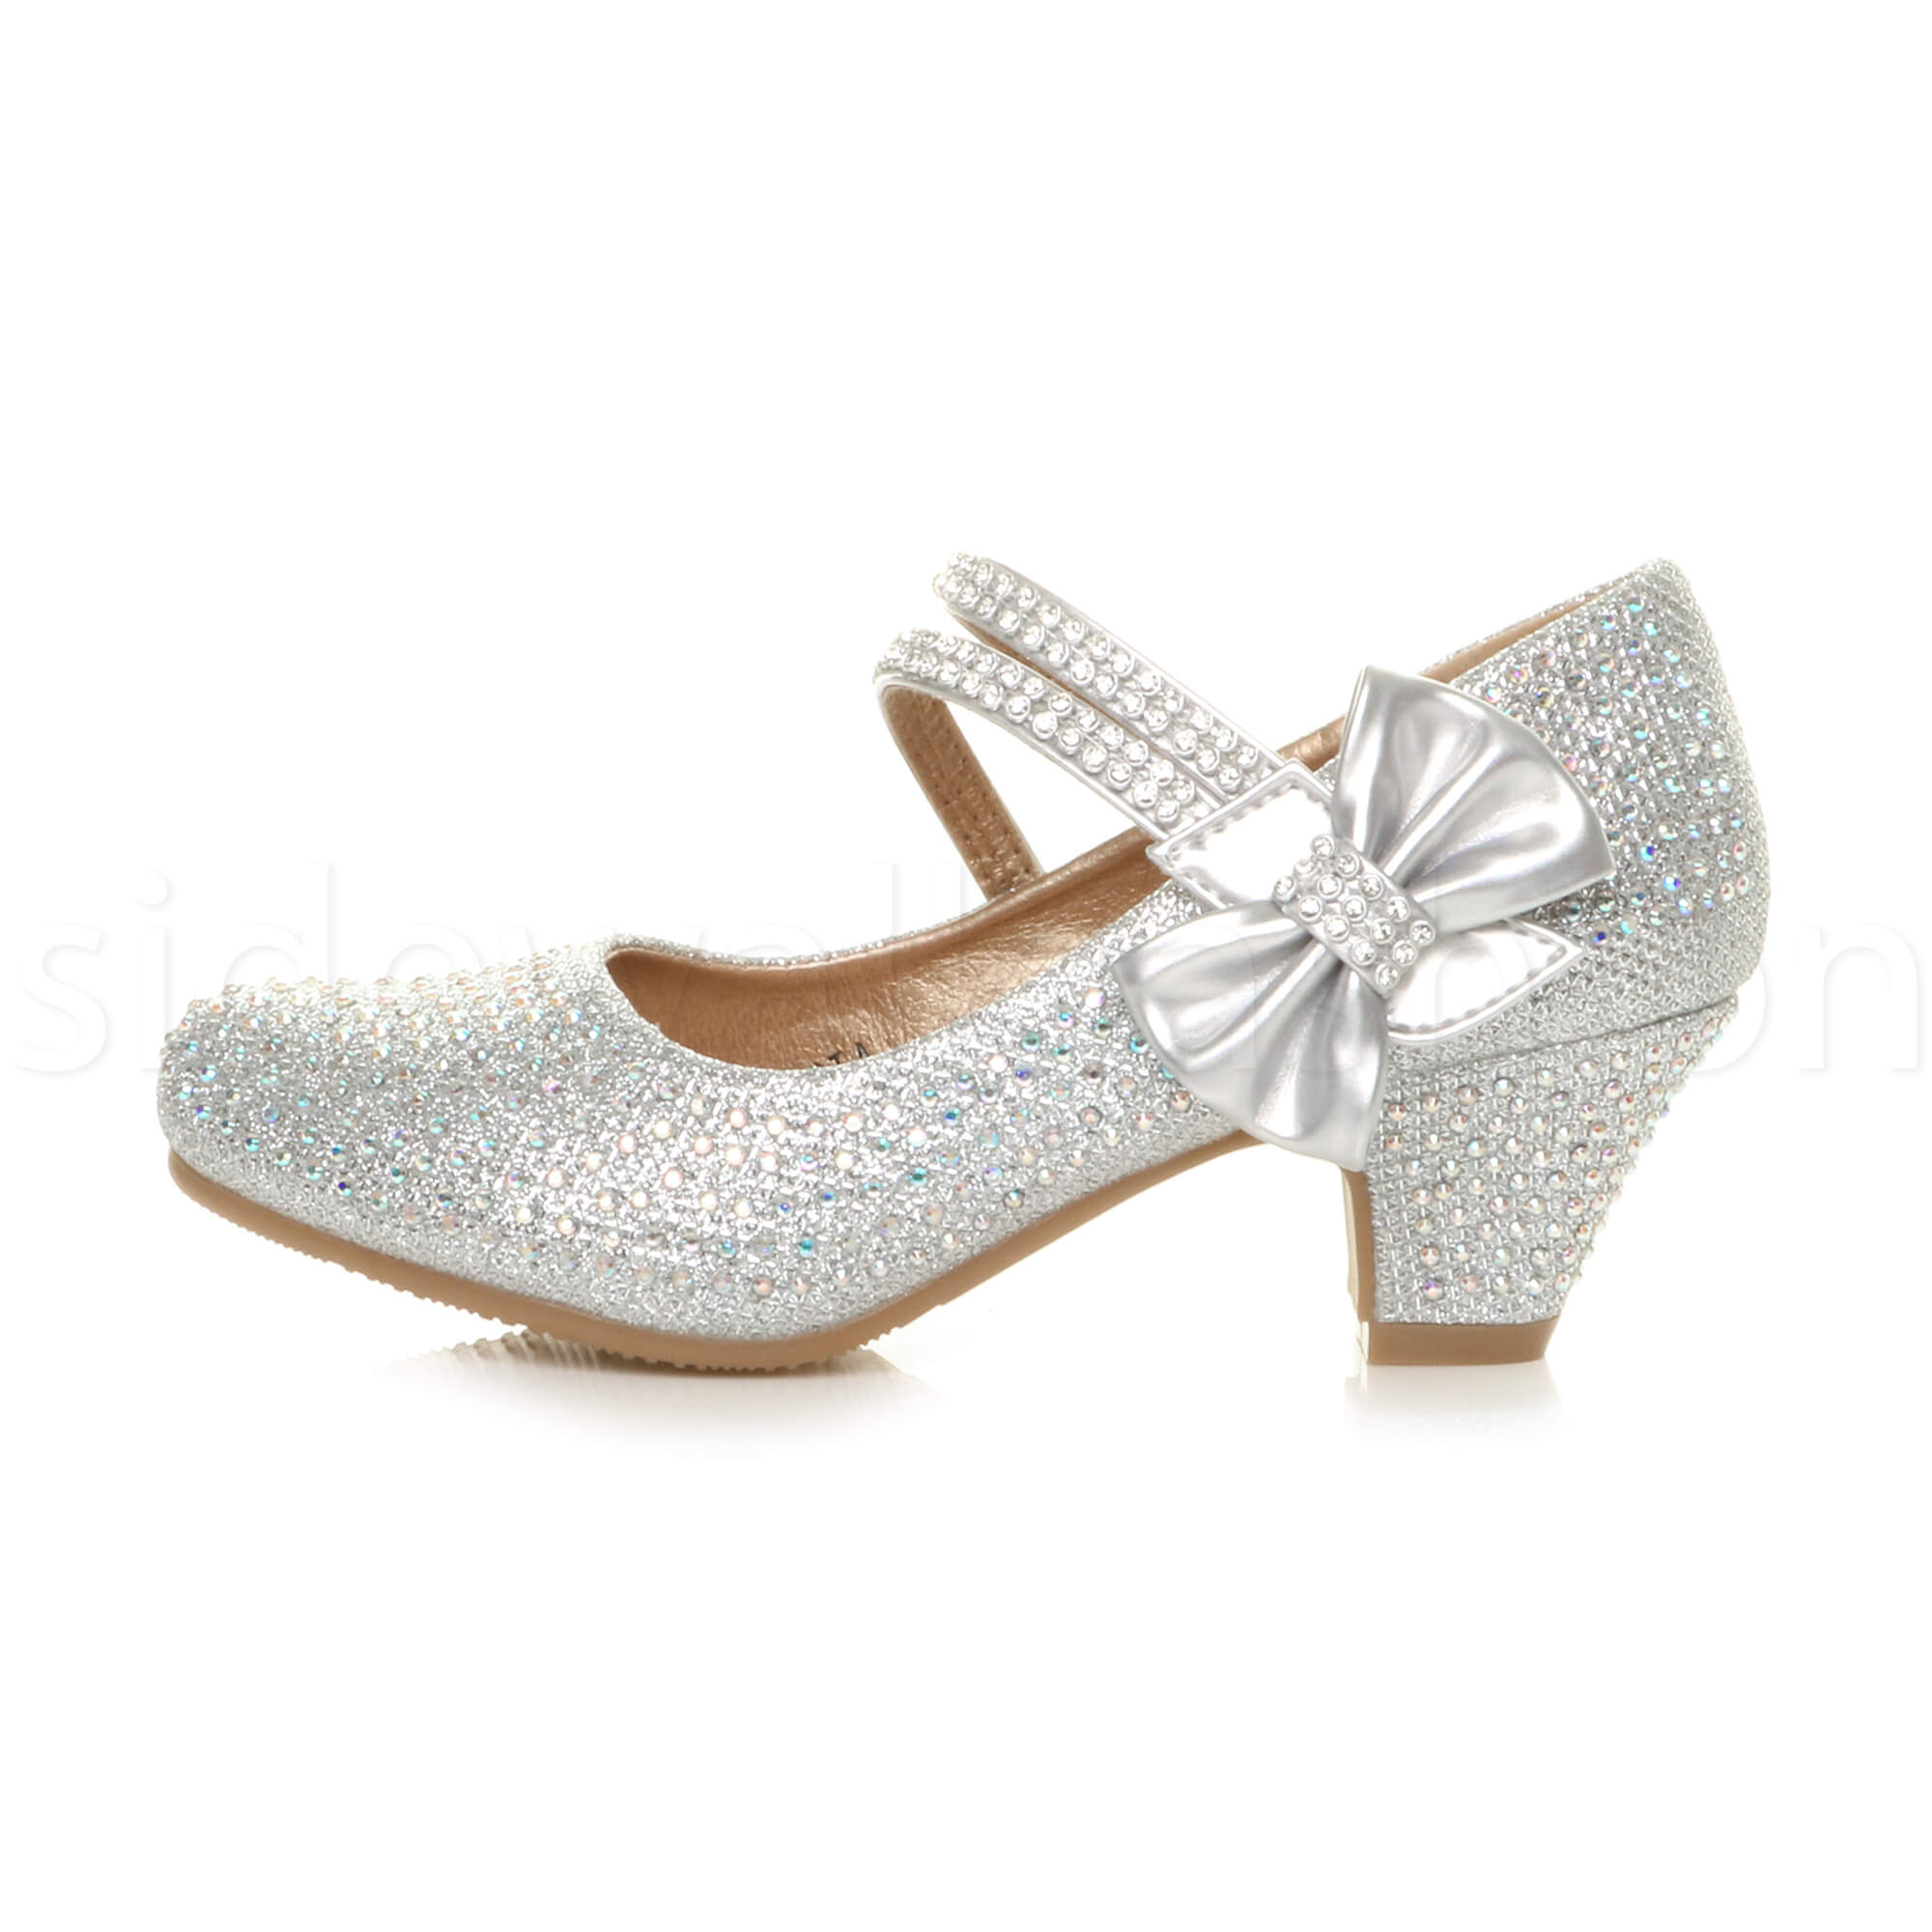 Charming Girls Kids Childrens Low Heel Party Wedding Mary